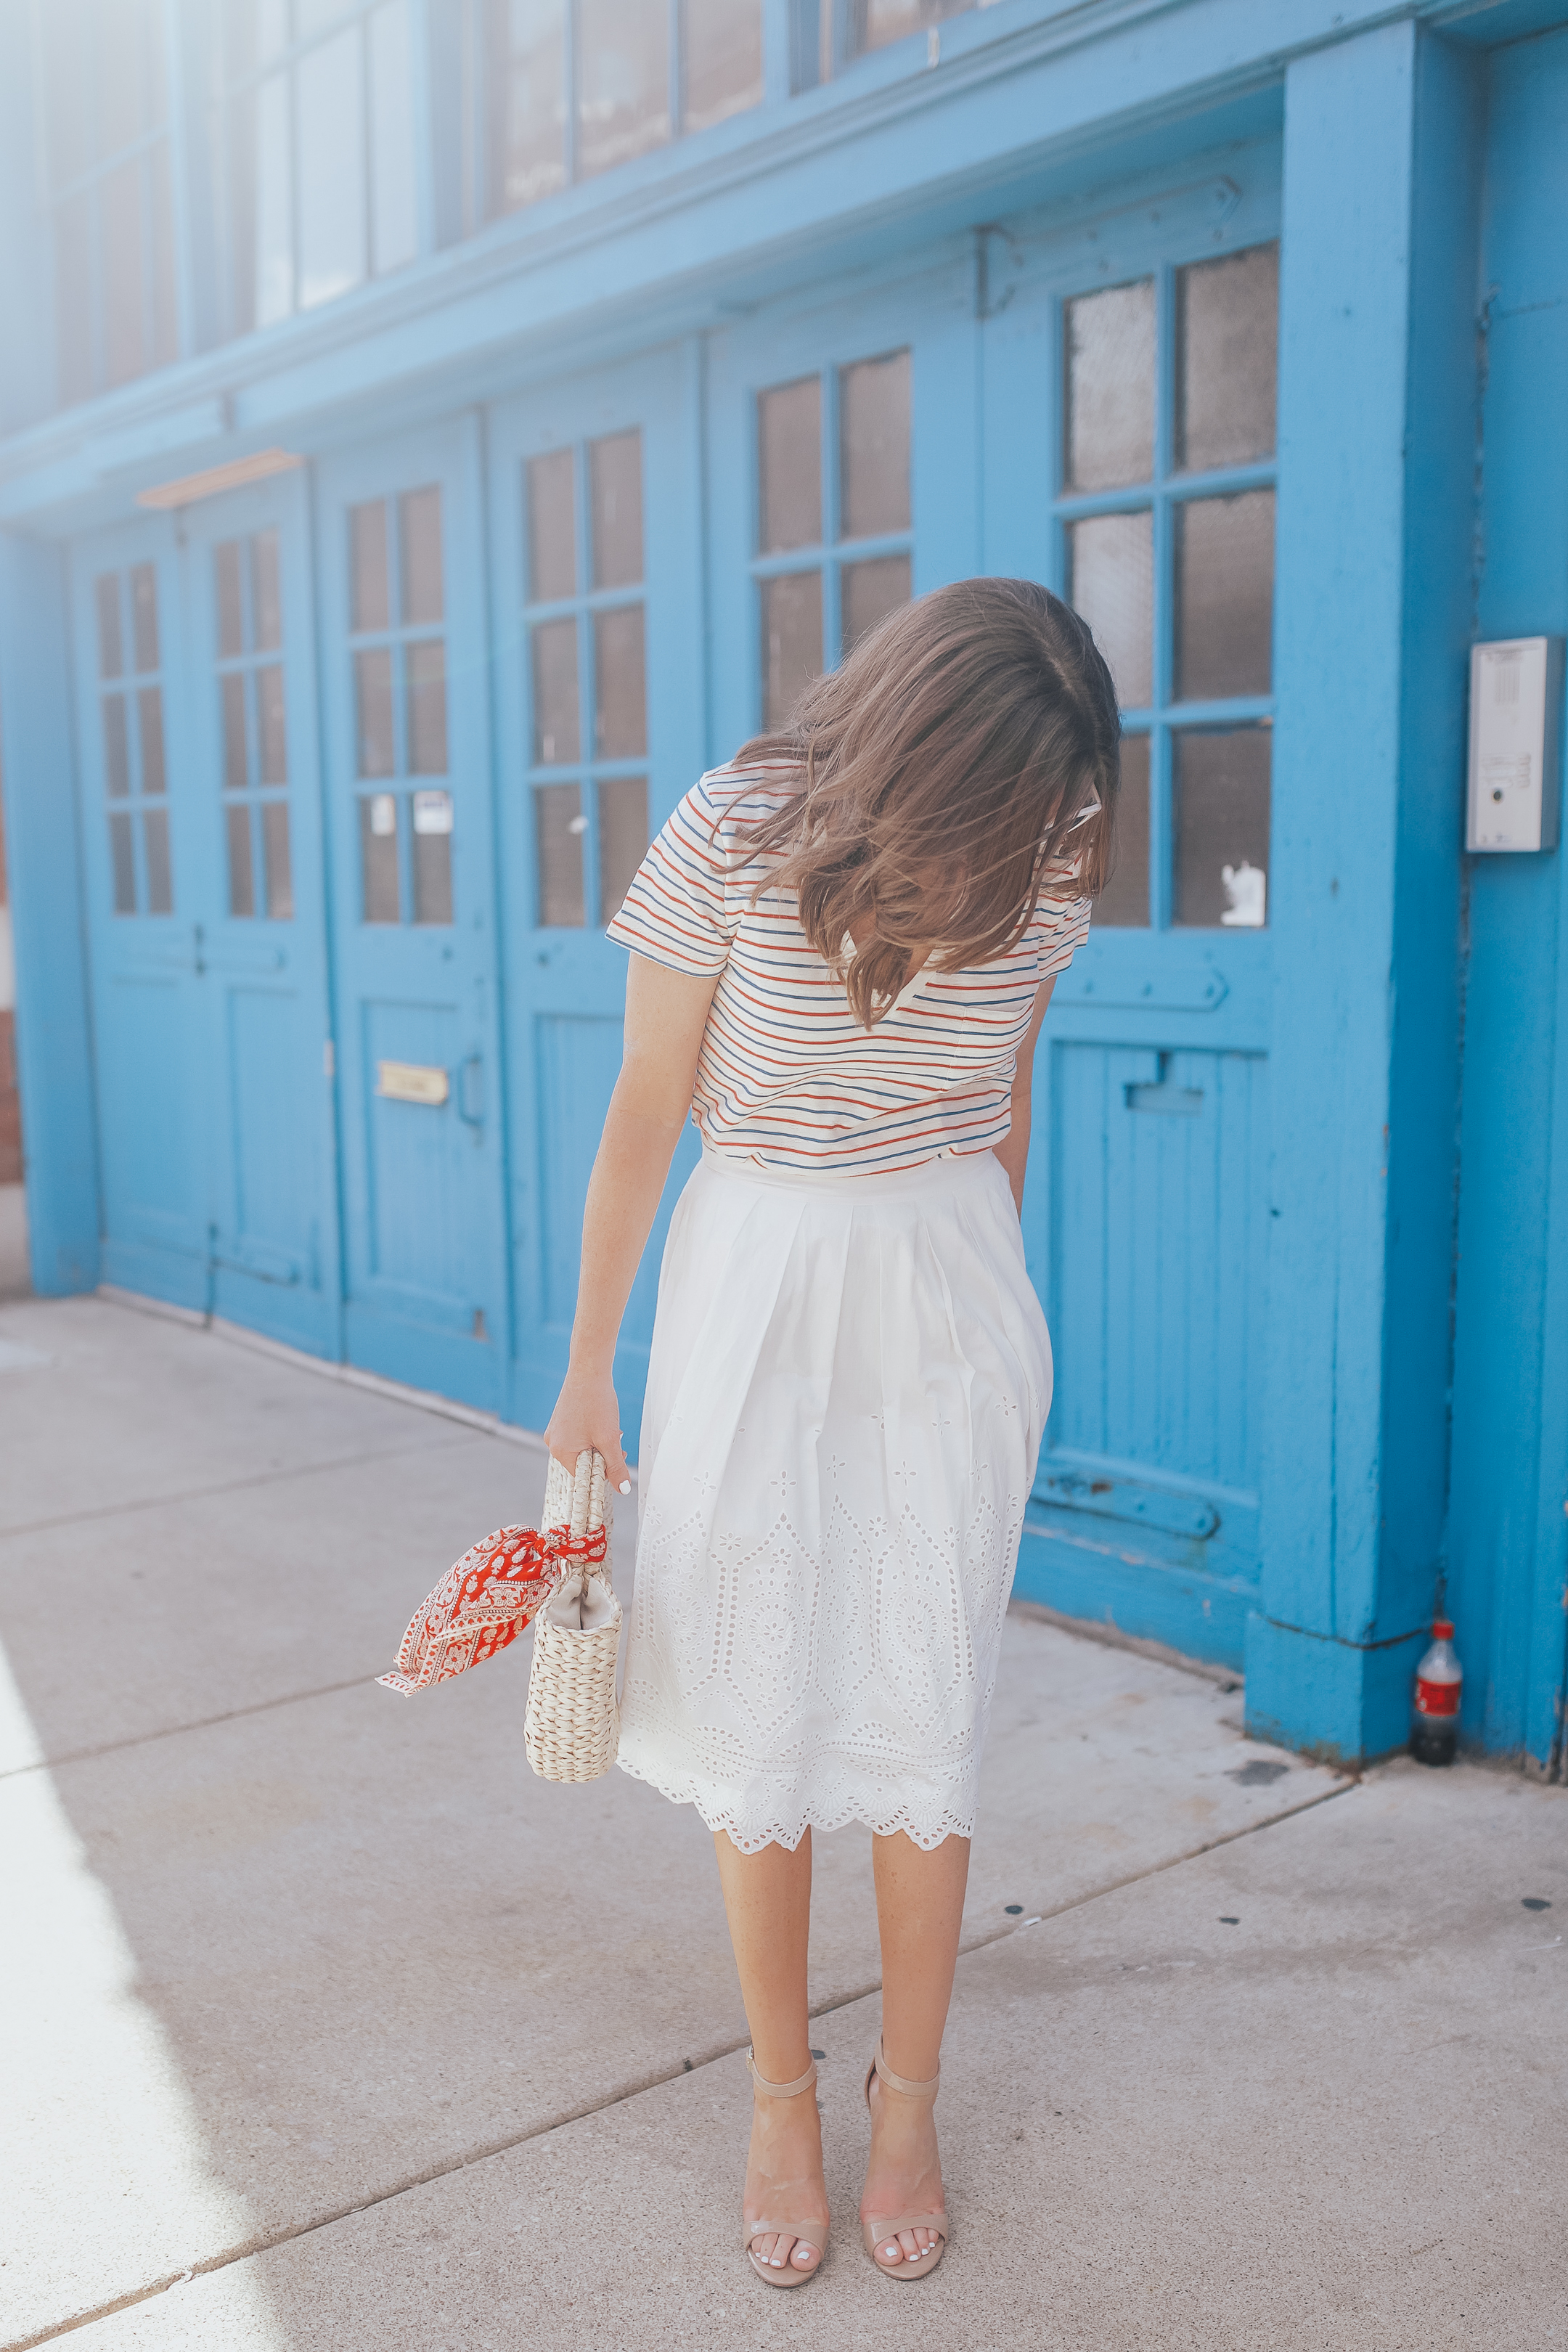 5097454b0f26 white-eyelet-midi-skirt-eyelet-and-stripes-planning a  day-trip-to-western-michigan-madewell-whisper-cotton-v-neck-tee